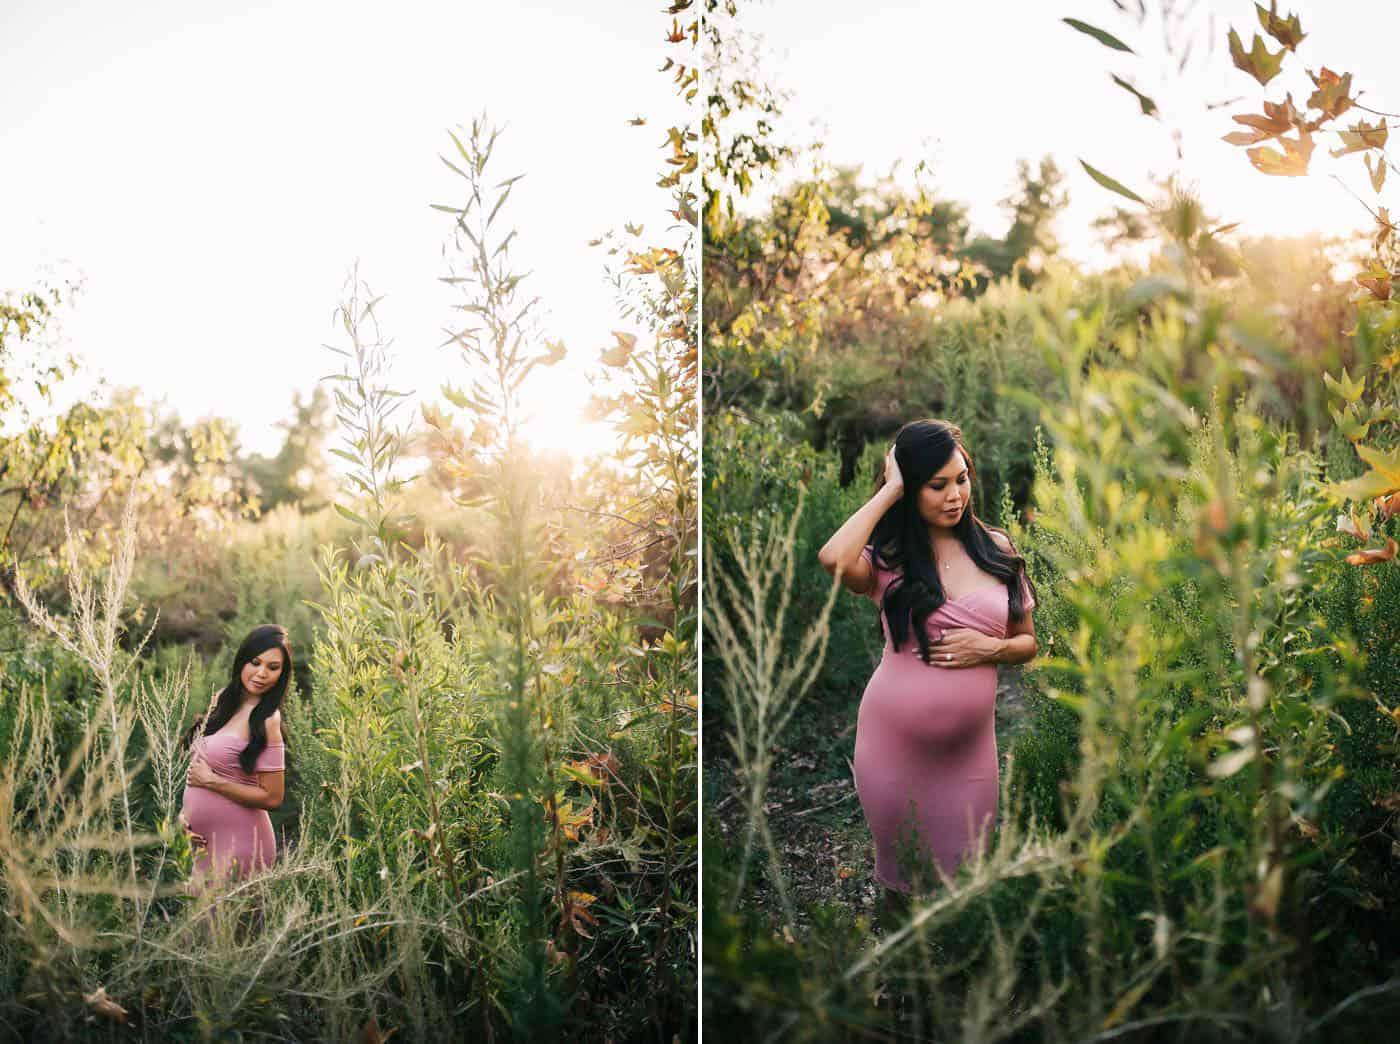 Janae Marie photographs a young pregnant mother in an overgrown field in a pink dress.